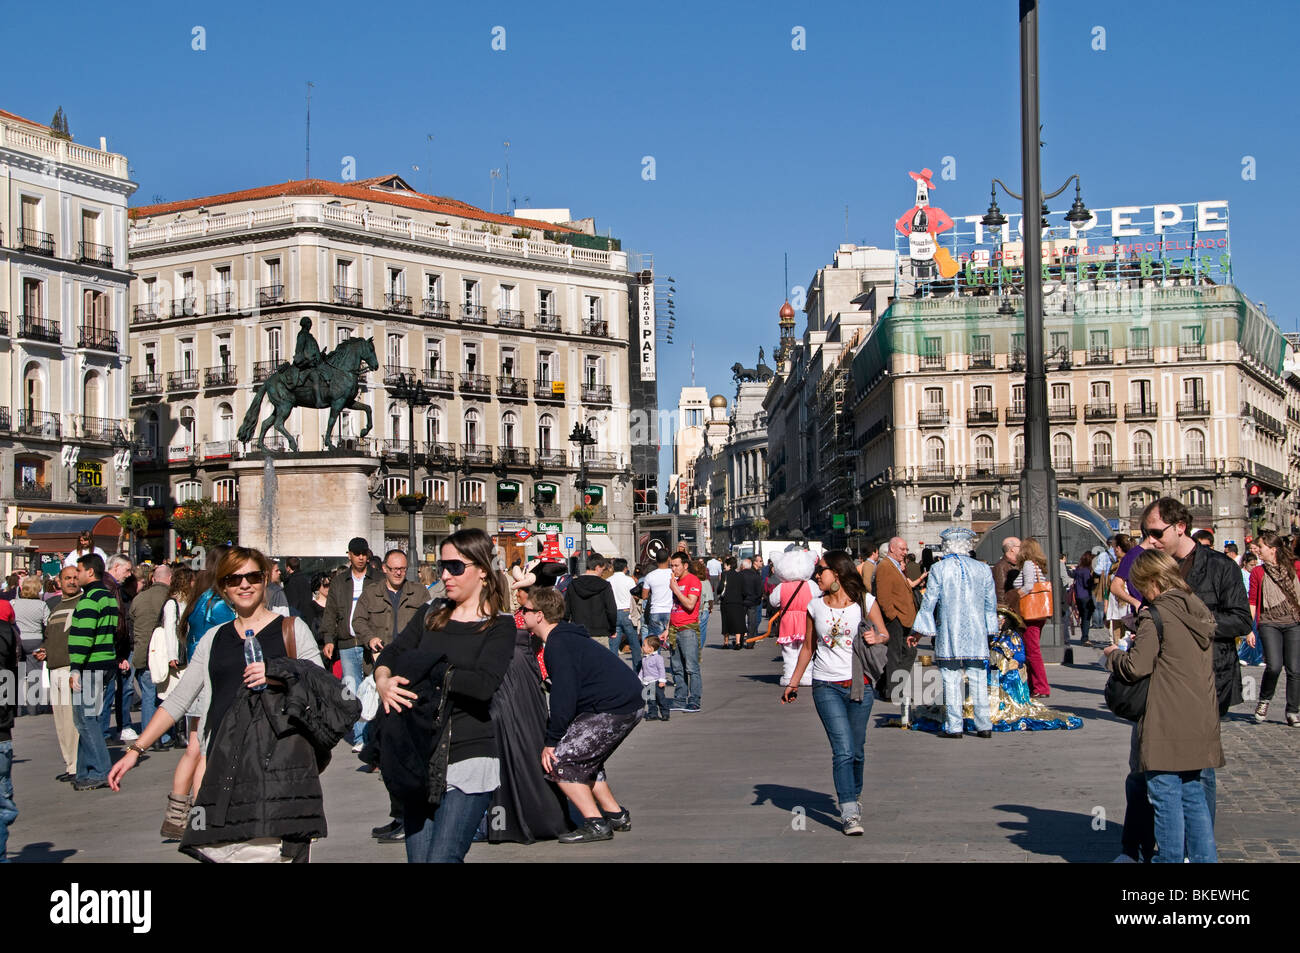 Plaza de la puerta del sol old madrid spain city stock for Plaza puerta del sol